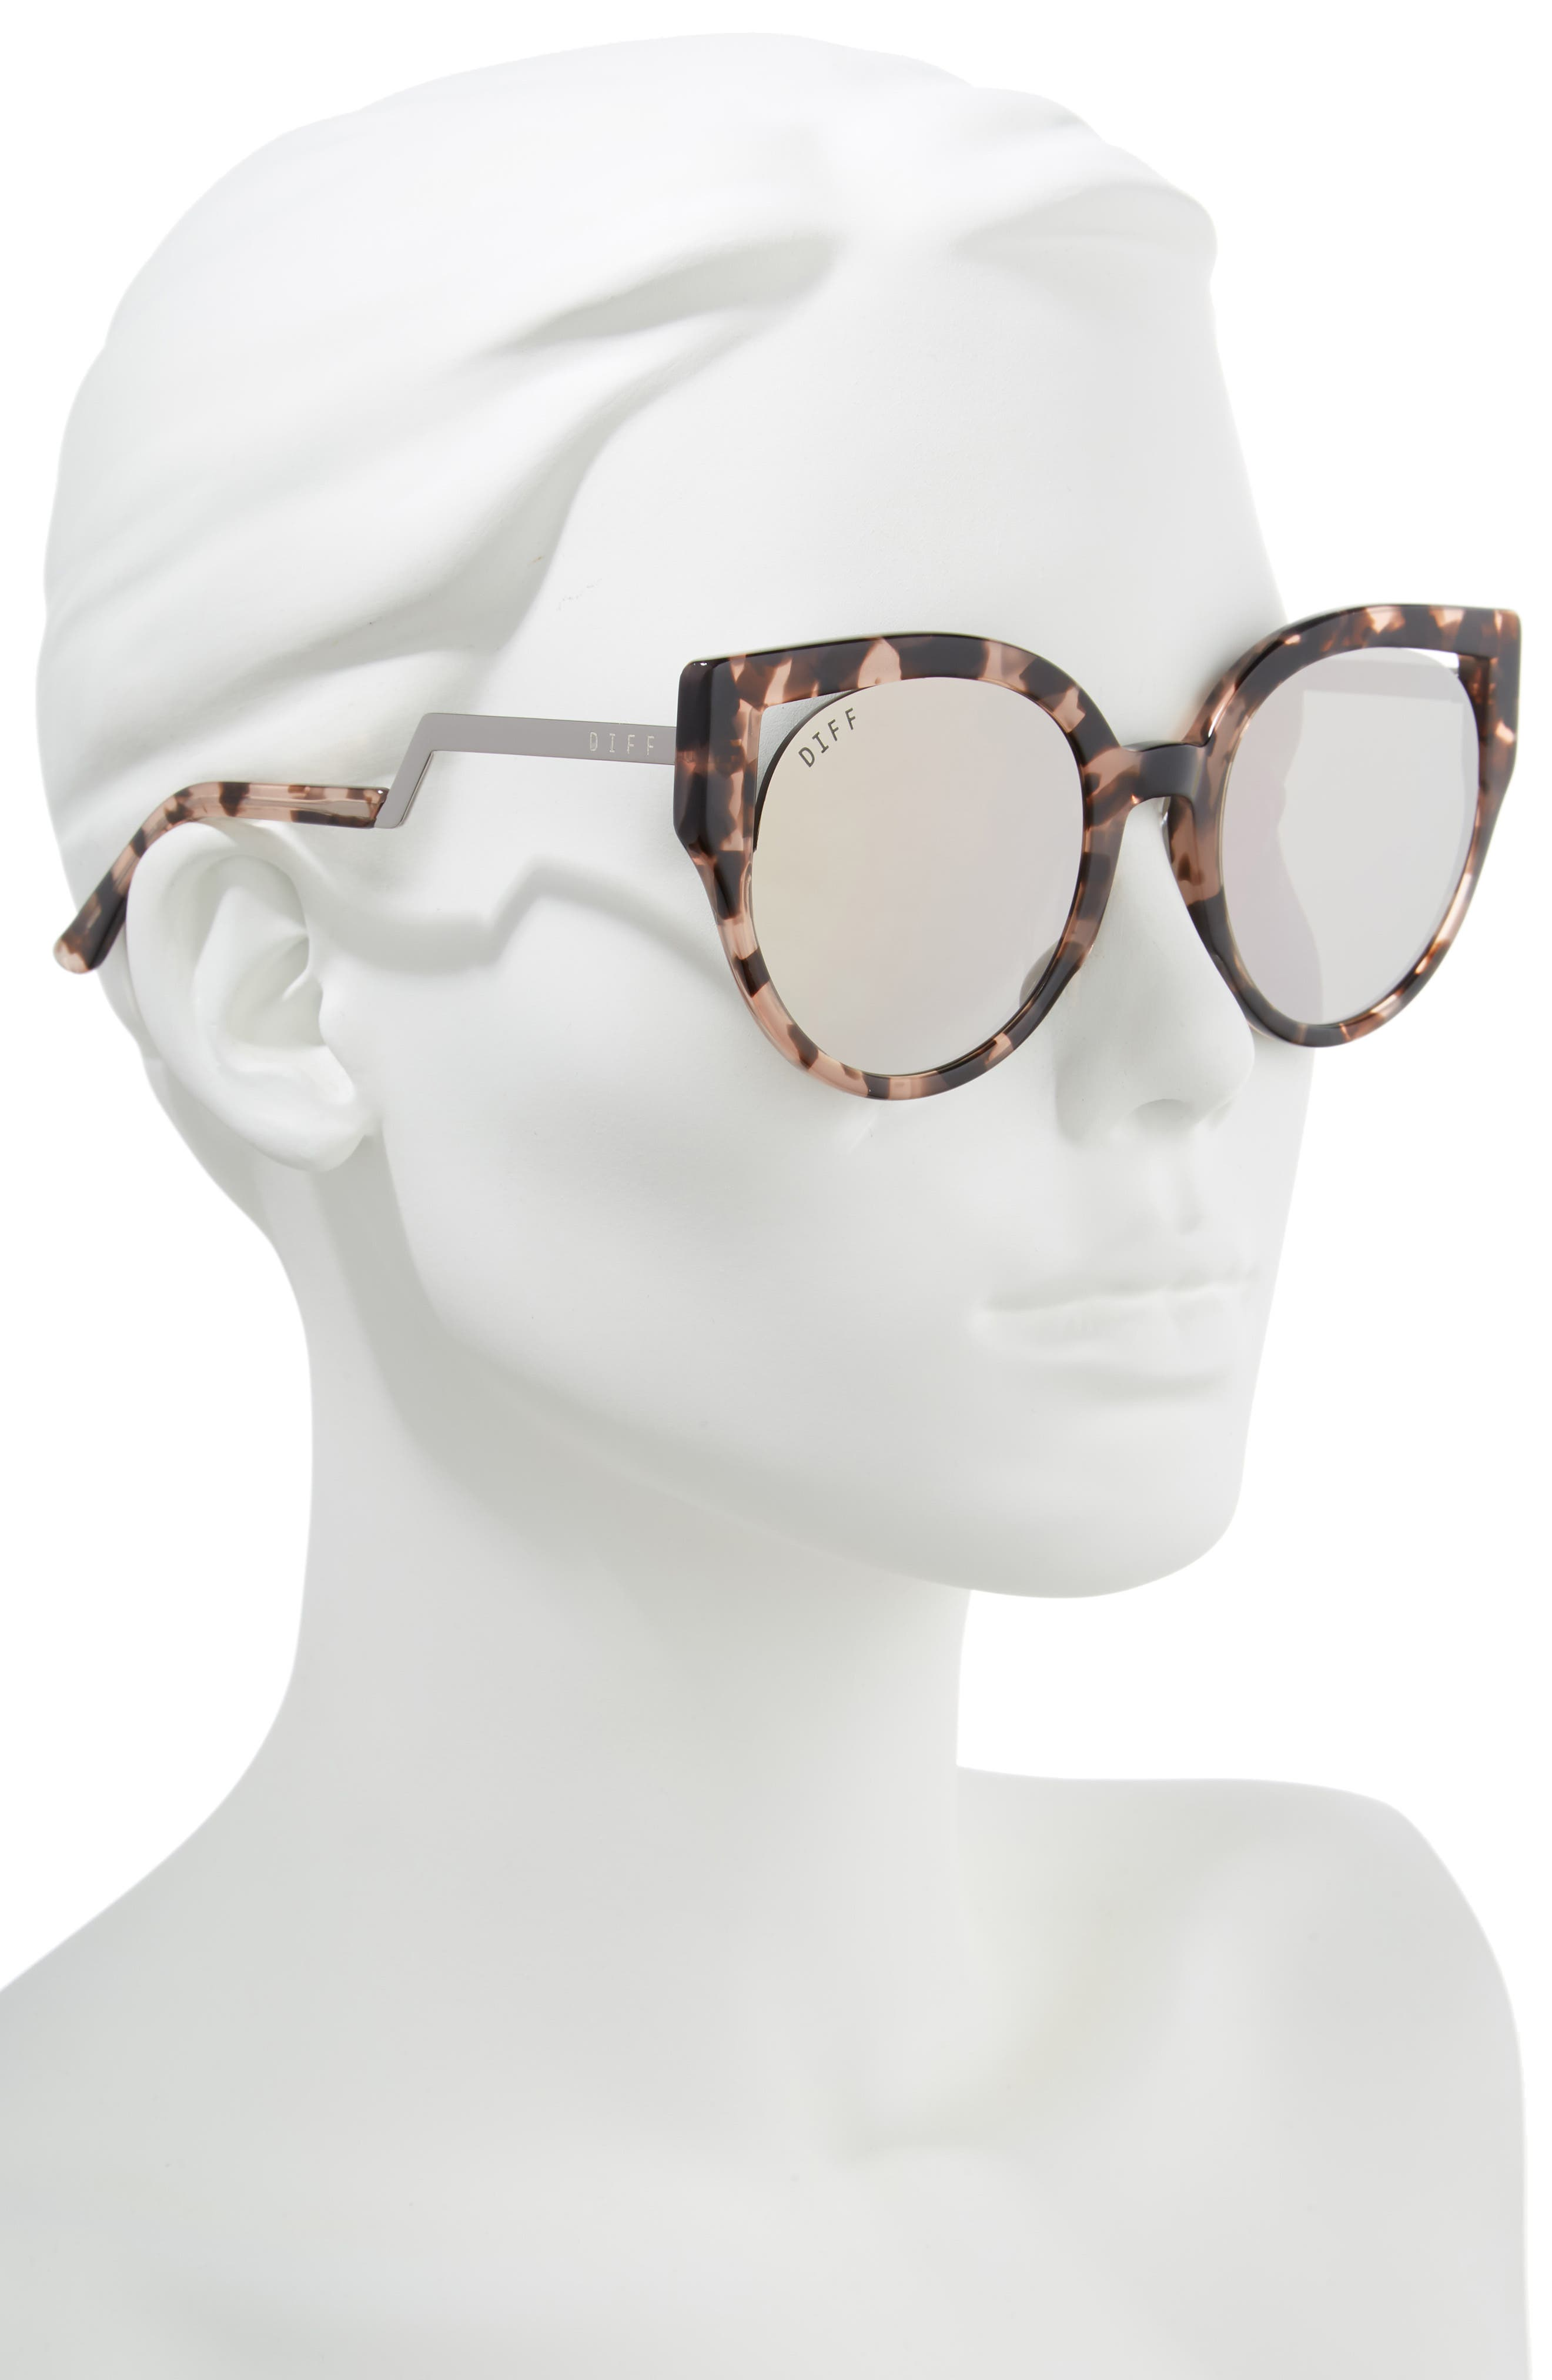 Penny 55mm Cat Eye Sunglasses,                             Alternate thumbnail 2, color,                             Himalayan Tortoise/ Taupe